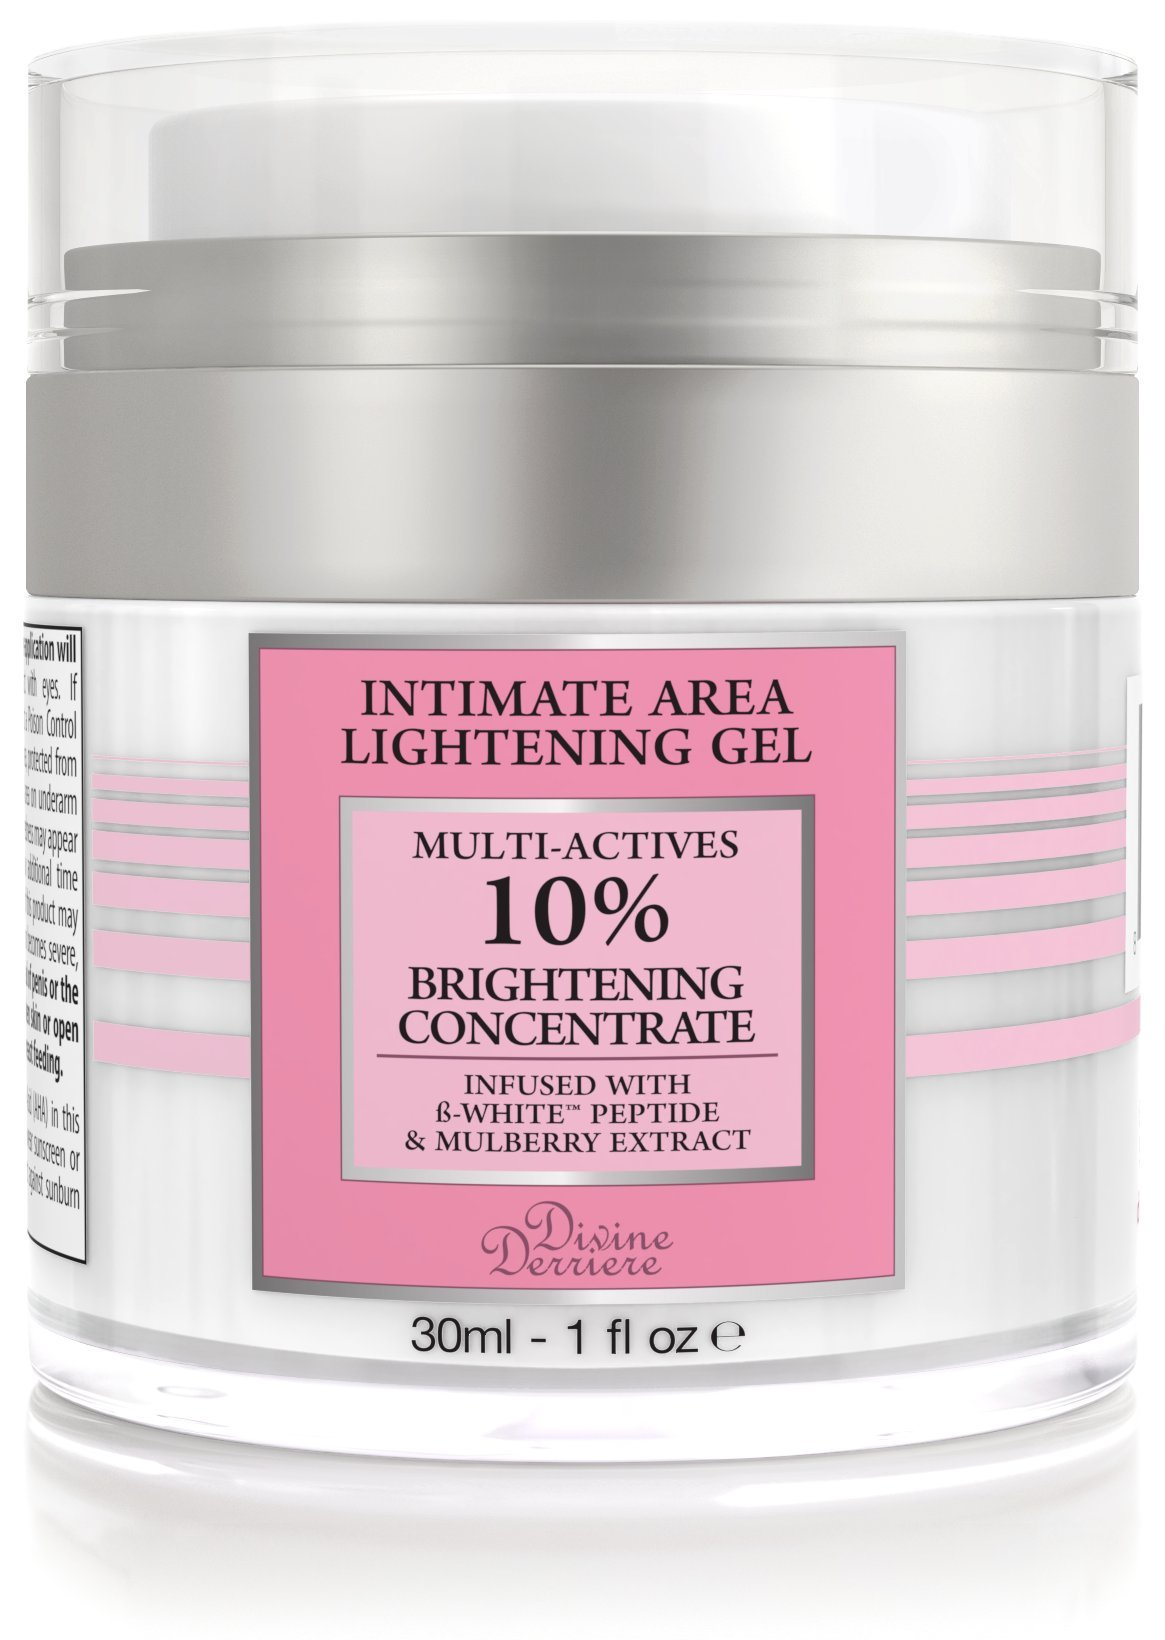 Divine Derriere Intimate Skin Lightening Gel for Body, Face, Bikini and Sensitive Areas - Skin Whitening Cream Contains Mulberry Extract, Arbutin, B-White Peptide 30ml / 1 oz. by DIVINE DERRIERE